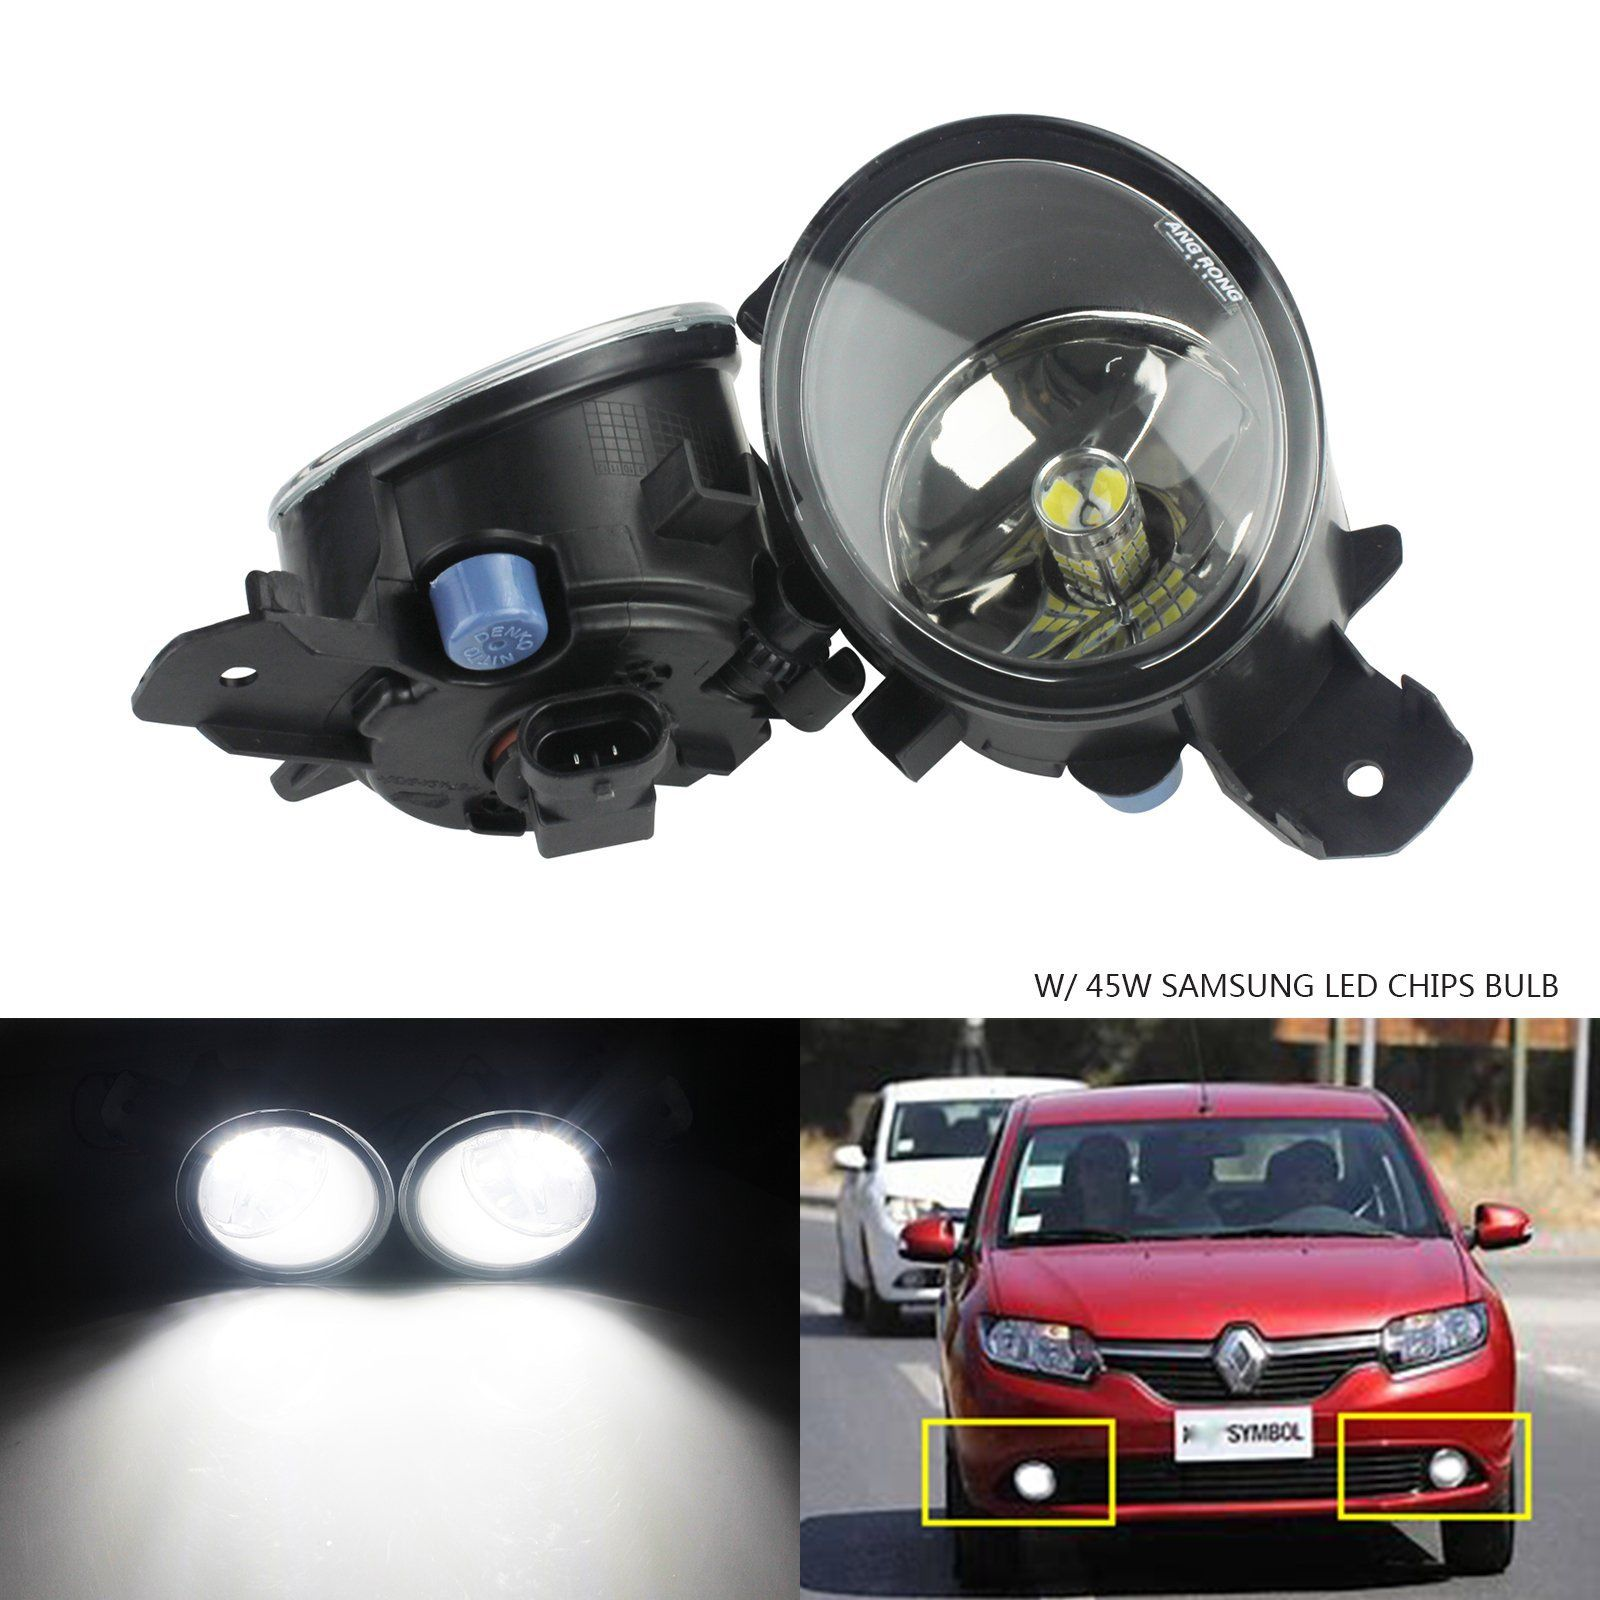 ANGRONG 2x High Power 2000LM 45W SAMSUNG <font><b>LED</b></font> Bulbs Front Fog Light Lamp For <font><b>Renault</b></font> Clio Koelos <font><b>Modus</b></font> Vel Satis image